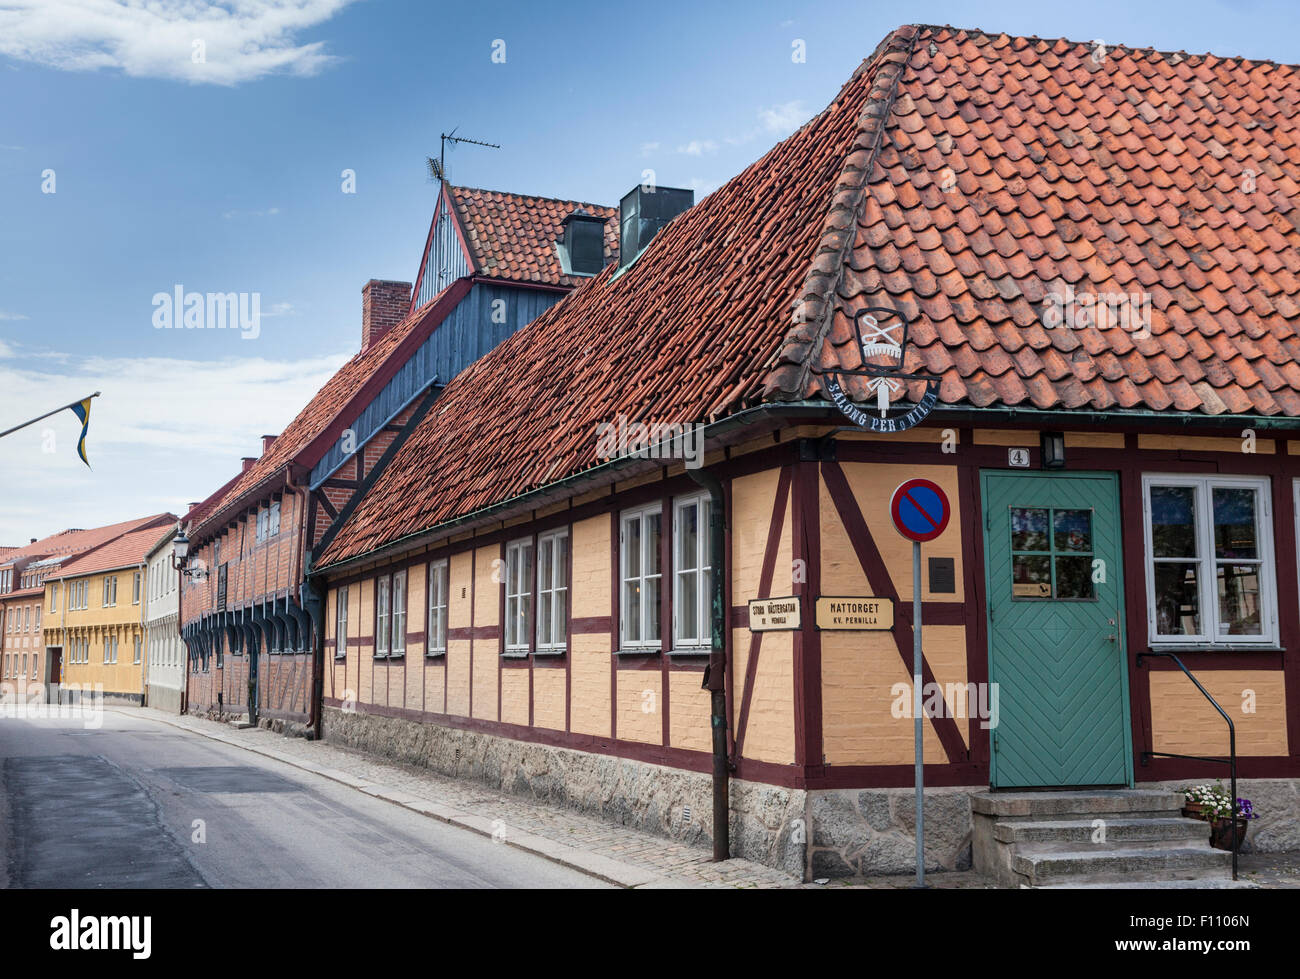 Half-timbered buildings in Ystad, a town in Skane in southern Sweden - Stock Image